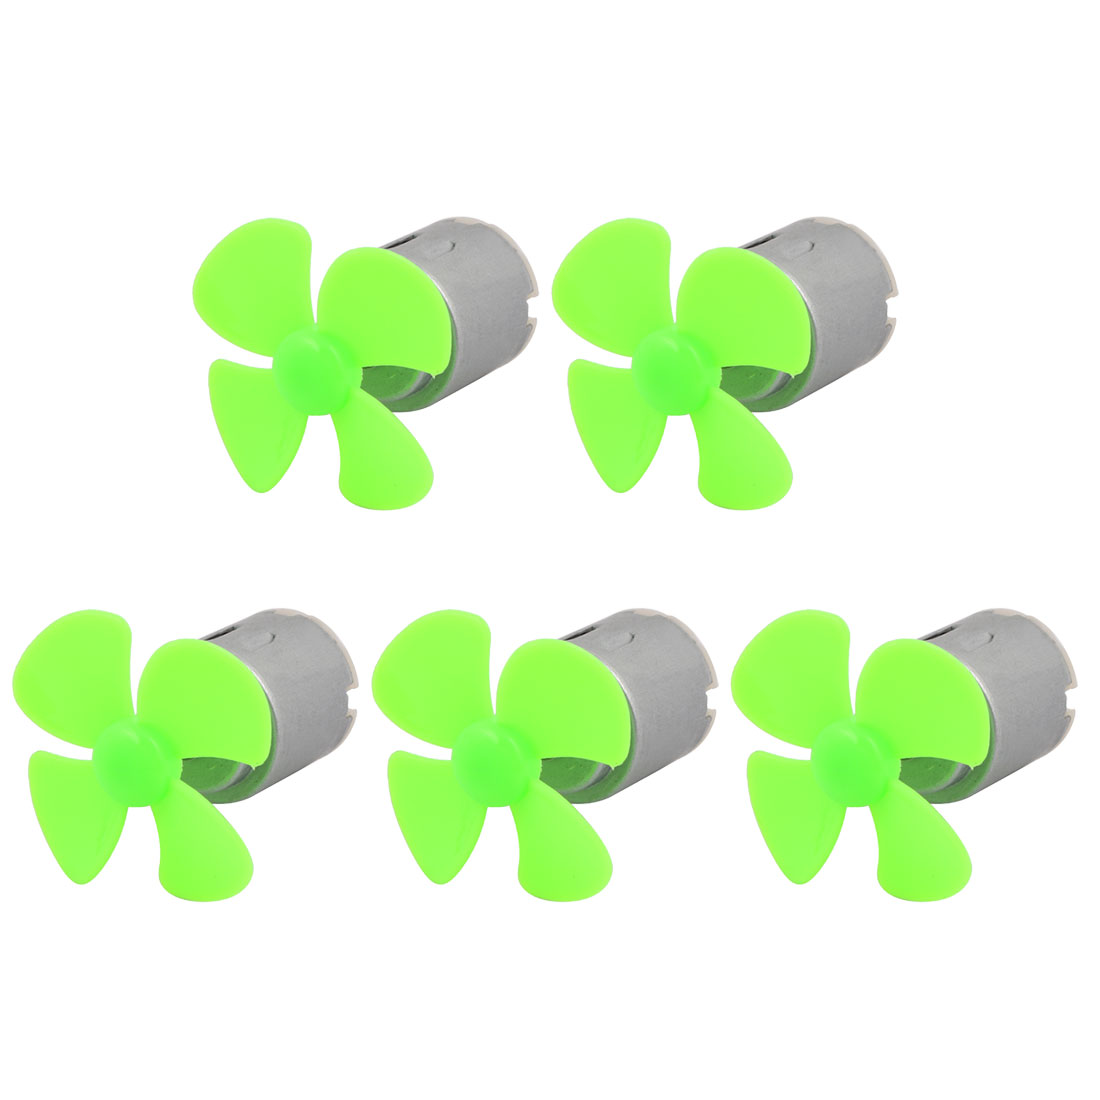 5pcs DC 3V 0.13A 9000RPM Strong Force Motor 4 Blades 40mm Green Propeller for RC Aircraft